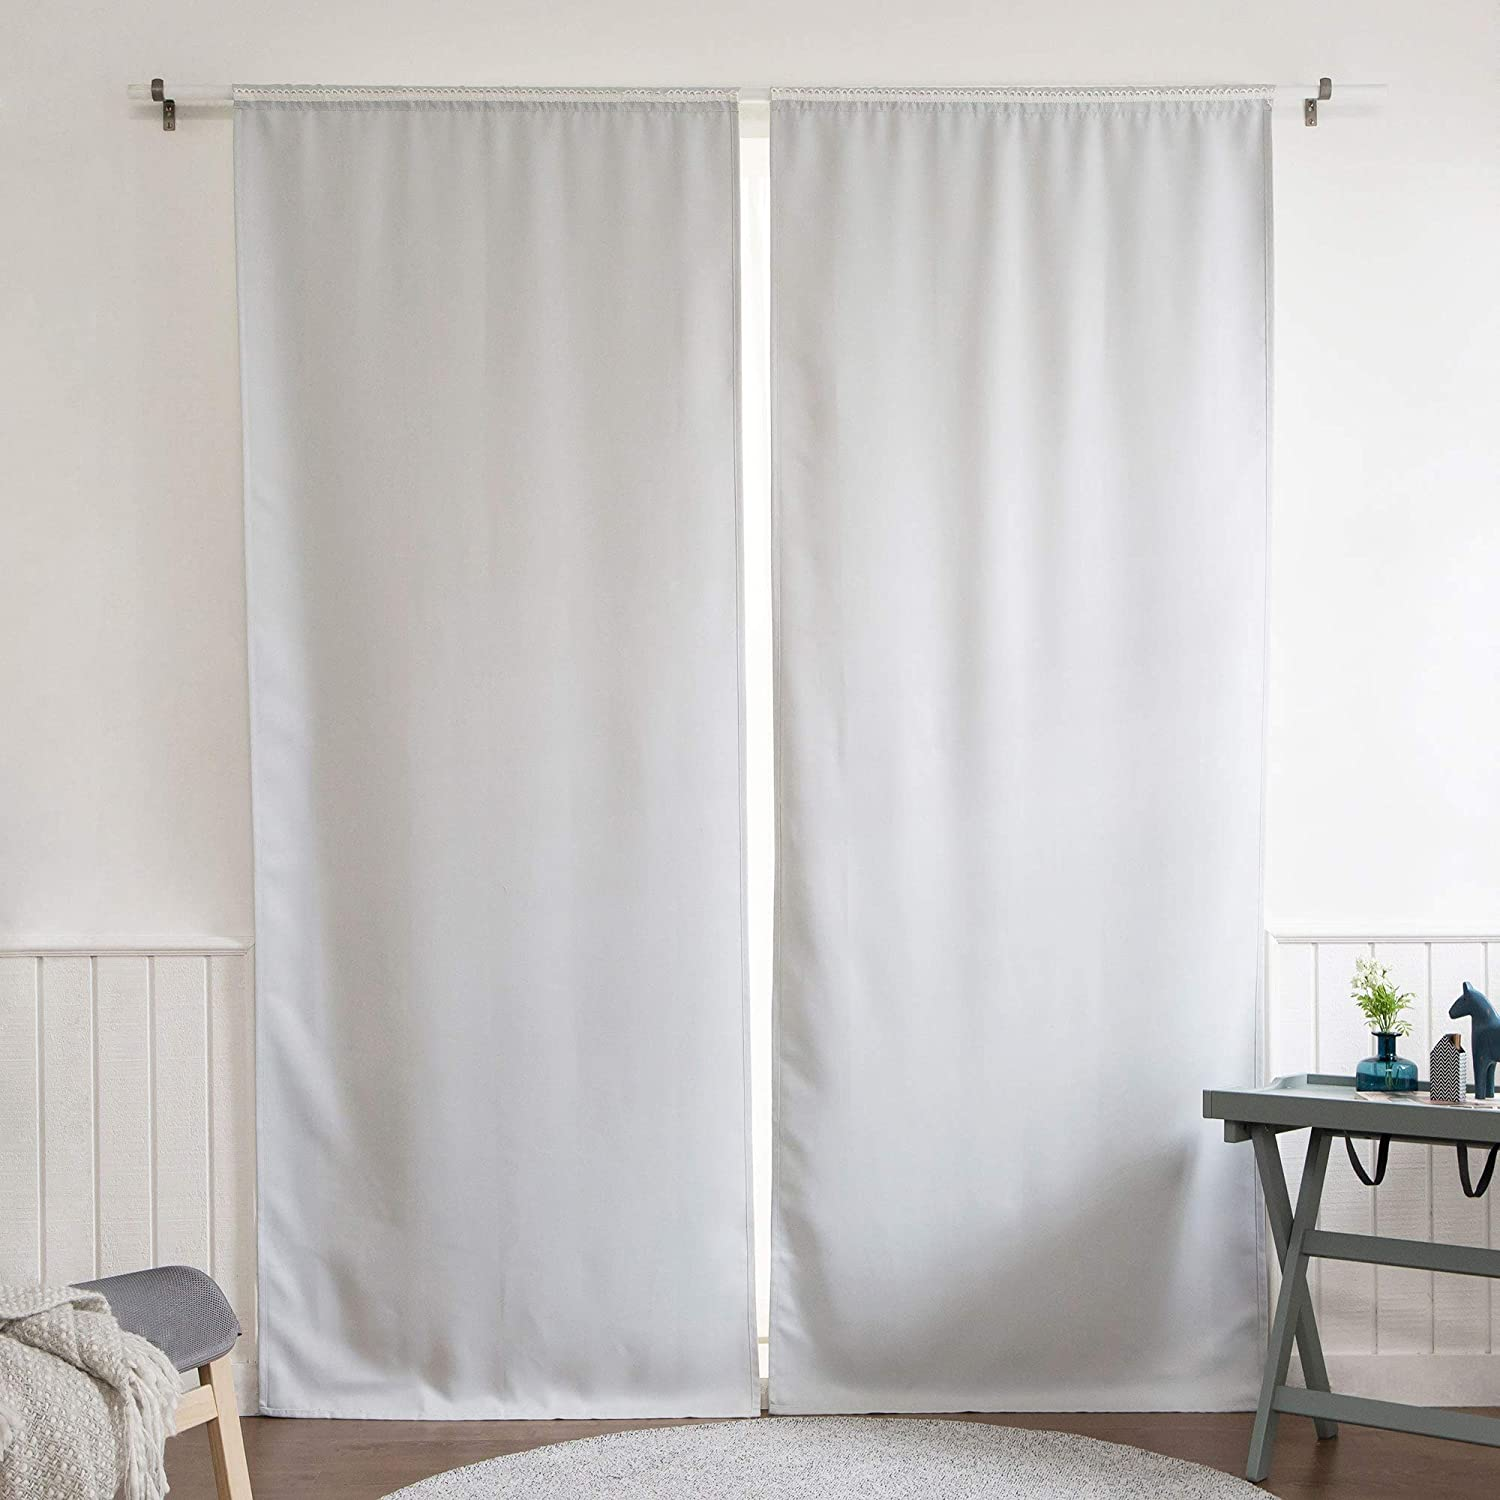 Aurora Home Blackout Curtain Liner Panel (Set of 2) 108 Inches